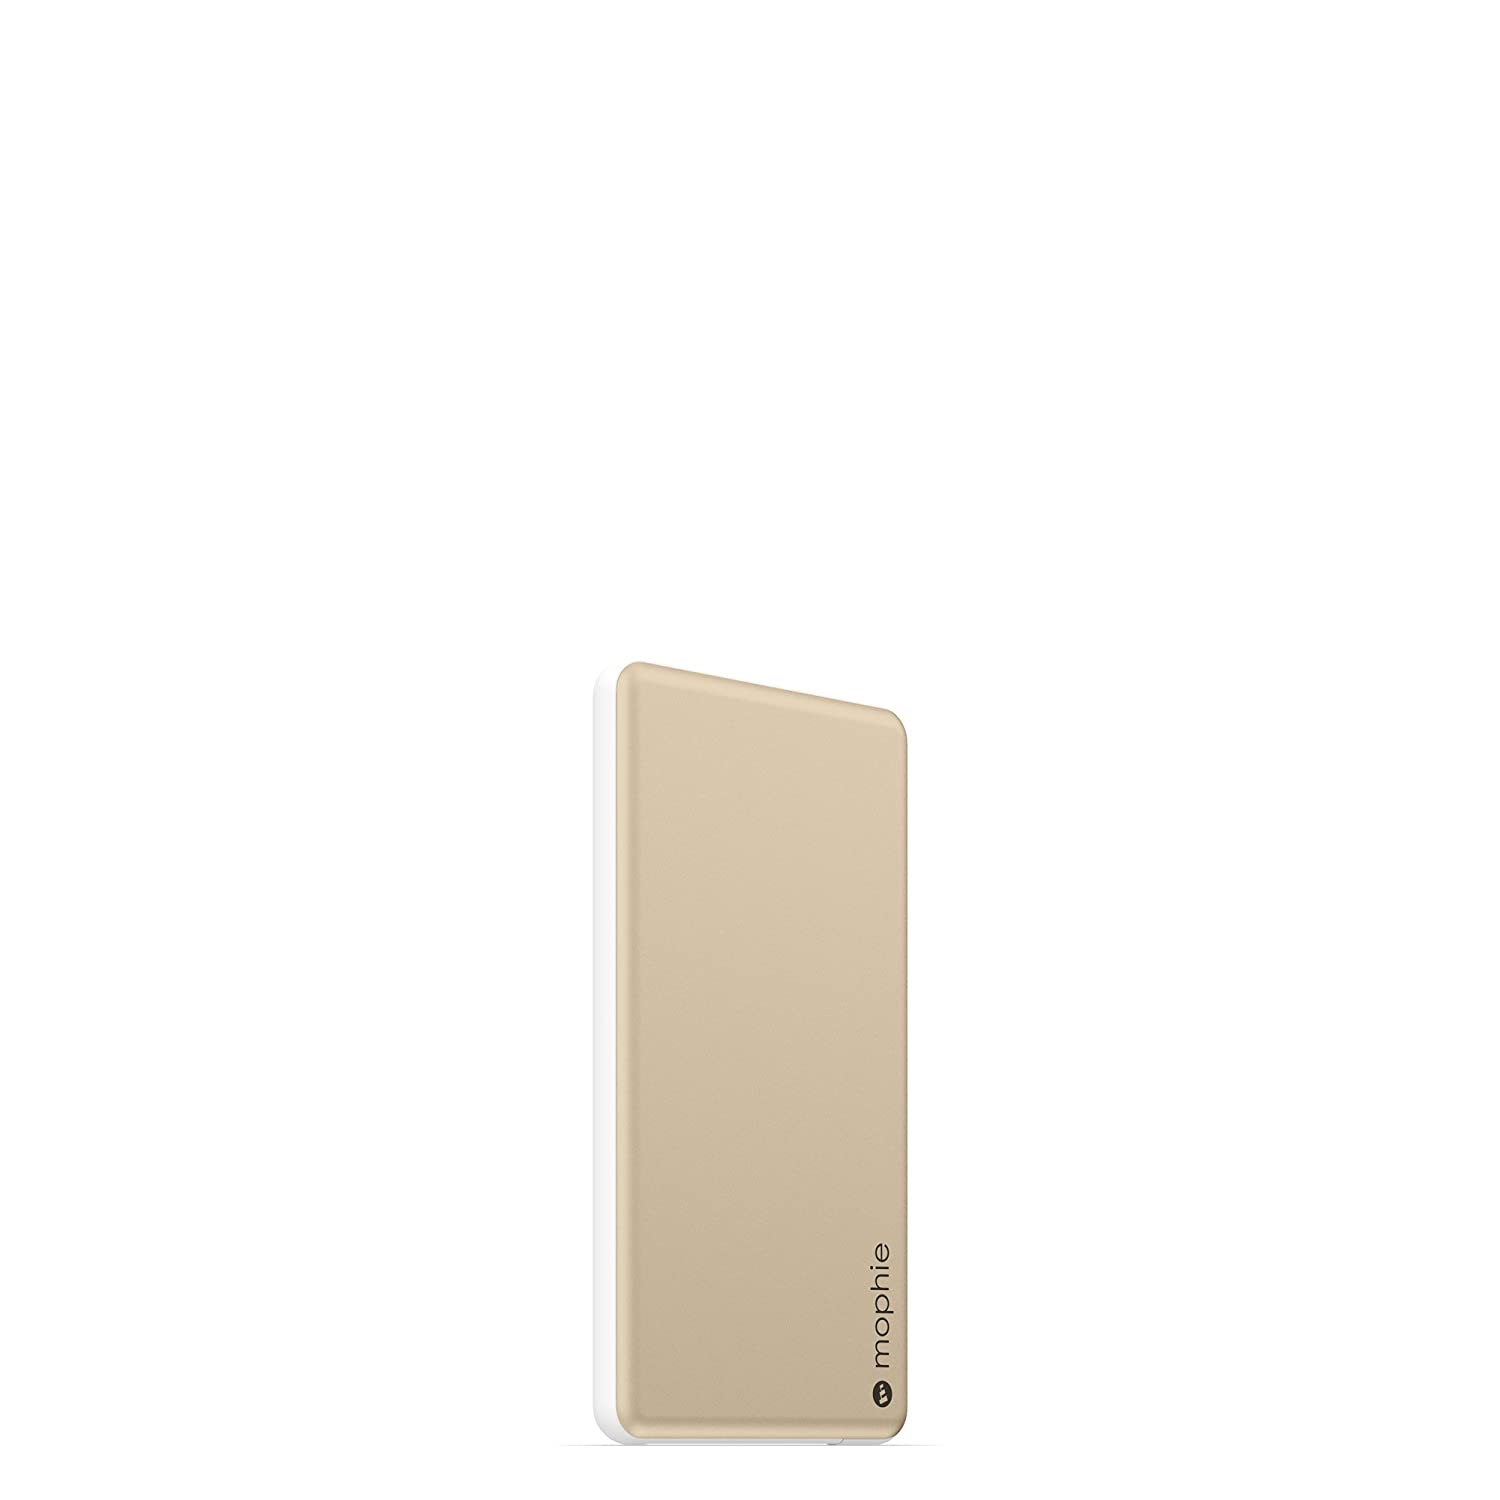 Mophie powerstation plus mini external battery with built in mophie powerstation plus mini external battery with built in cables for smartphones and tablets 4000mah gold amazon electronics fandeluxe Choice Image